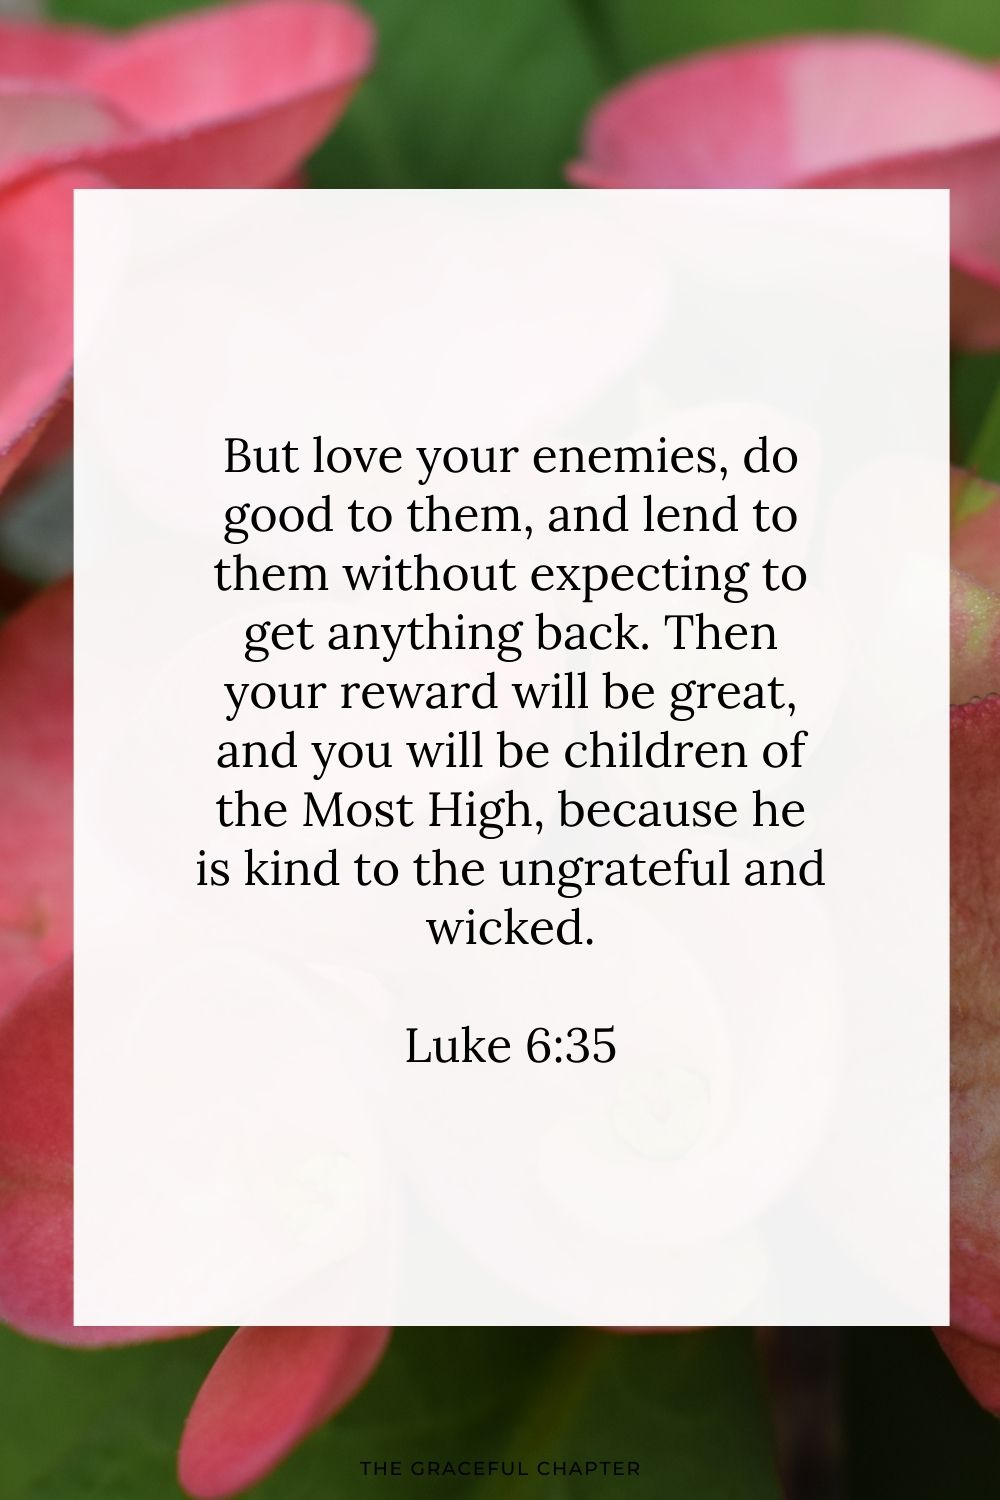 But love your enemies, do good to them, and lend to them without expecting to get anything back. Then your reward will be great, and you will be children of the Most High, because he is kind to the ungrateful and wicked. Luke 6:35